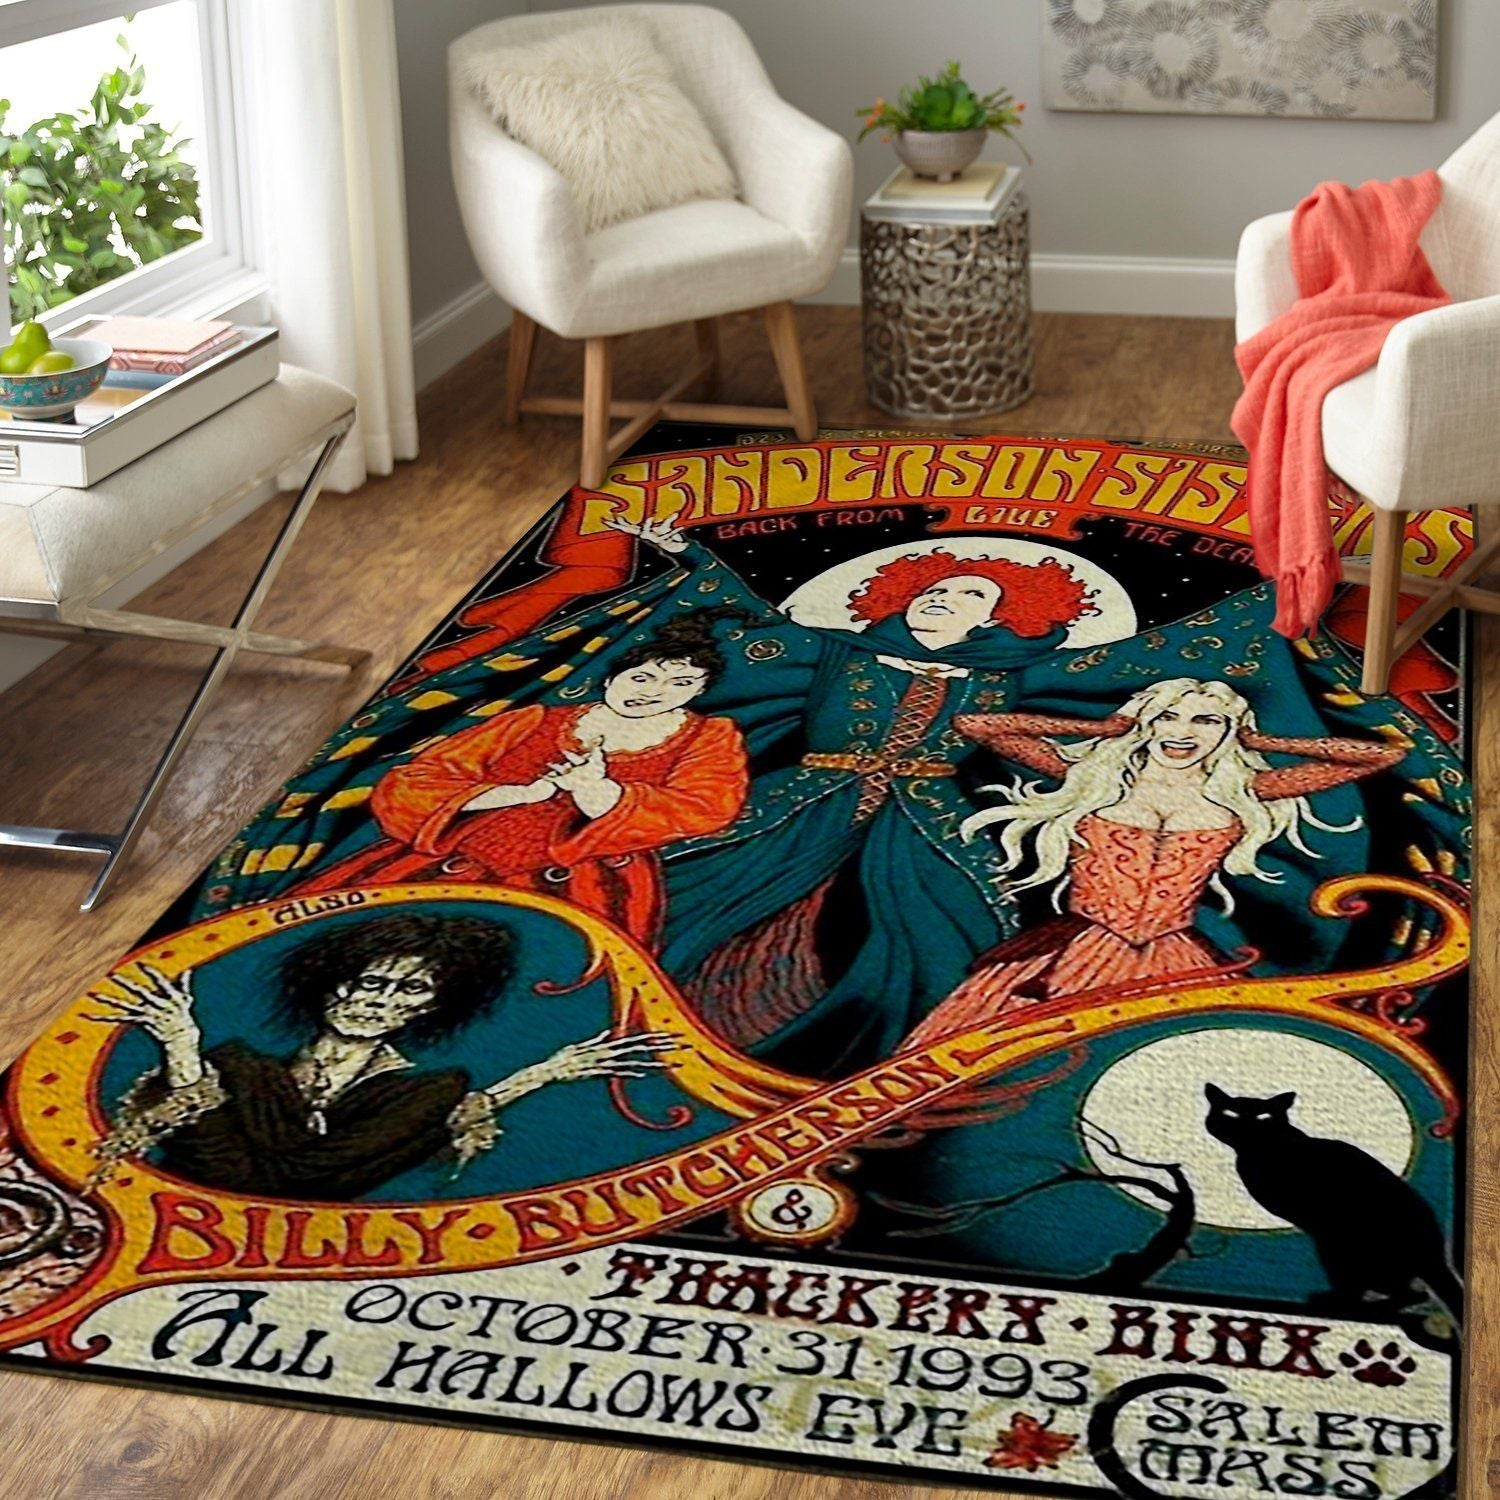 Sanderson Sisters - Hocus Pocus Movie HP190830 Area Rug Floor Decor